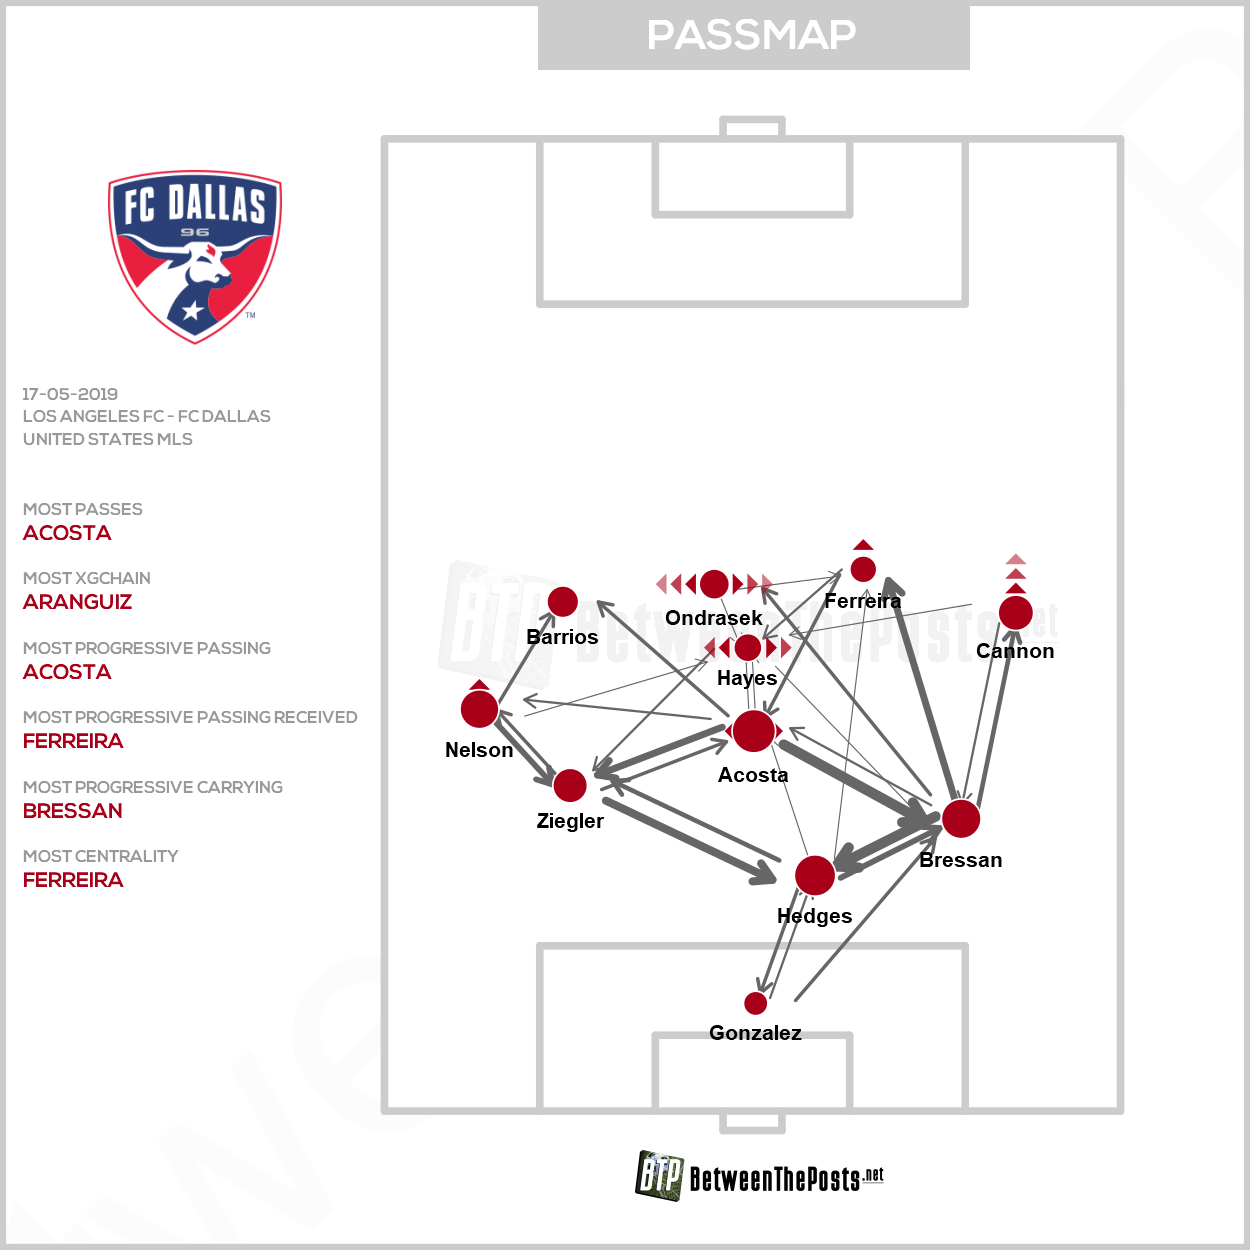 Passmap Los Angeles FC Dallas 2-0 MLS